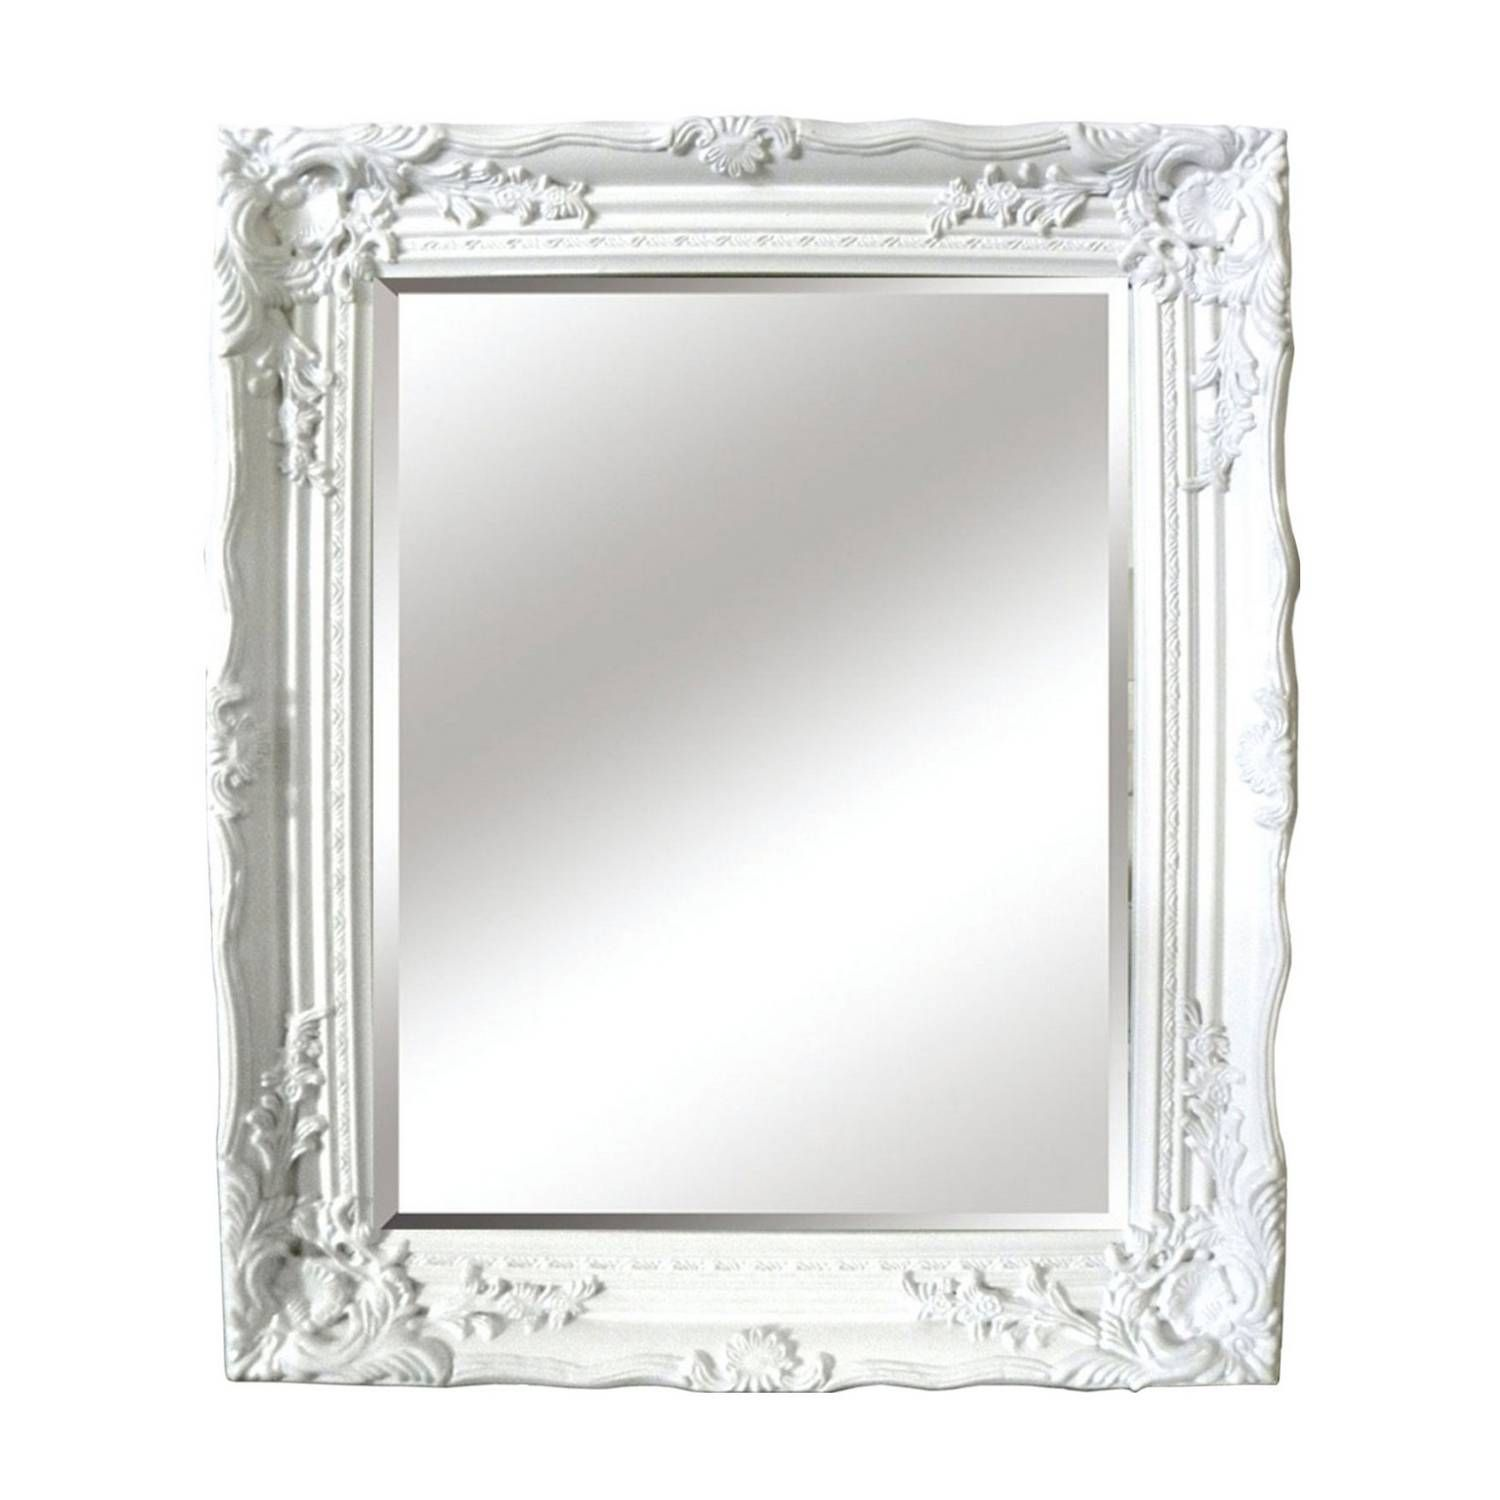 Buy antique white ornate mirror mirrors the range home buy antique white ornate mirror mirrors the range amipublicfo Choice Image